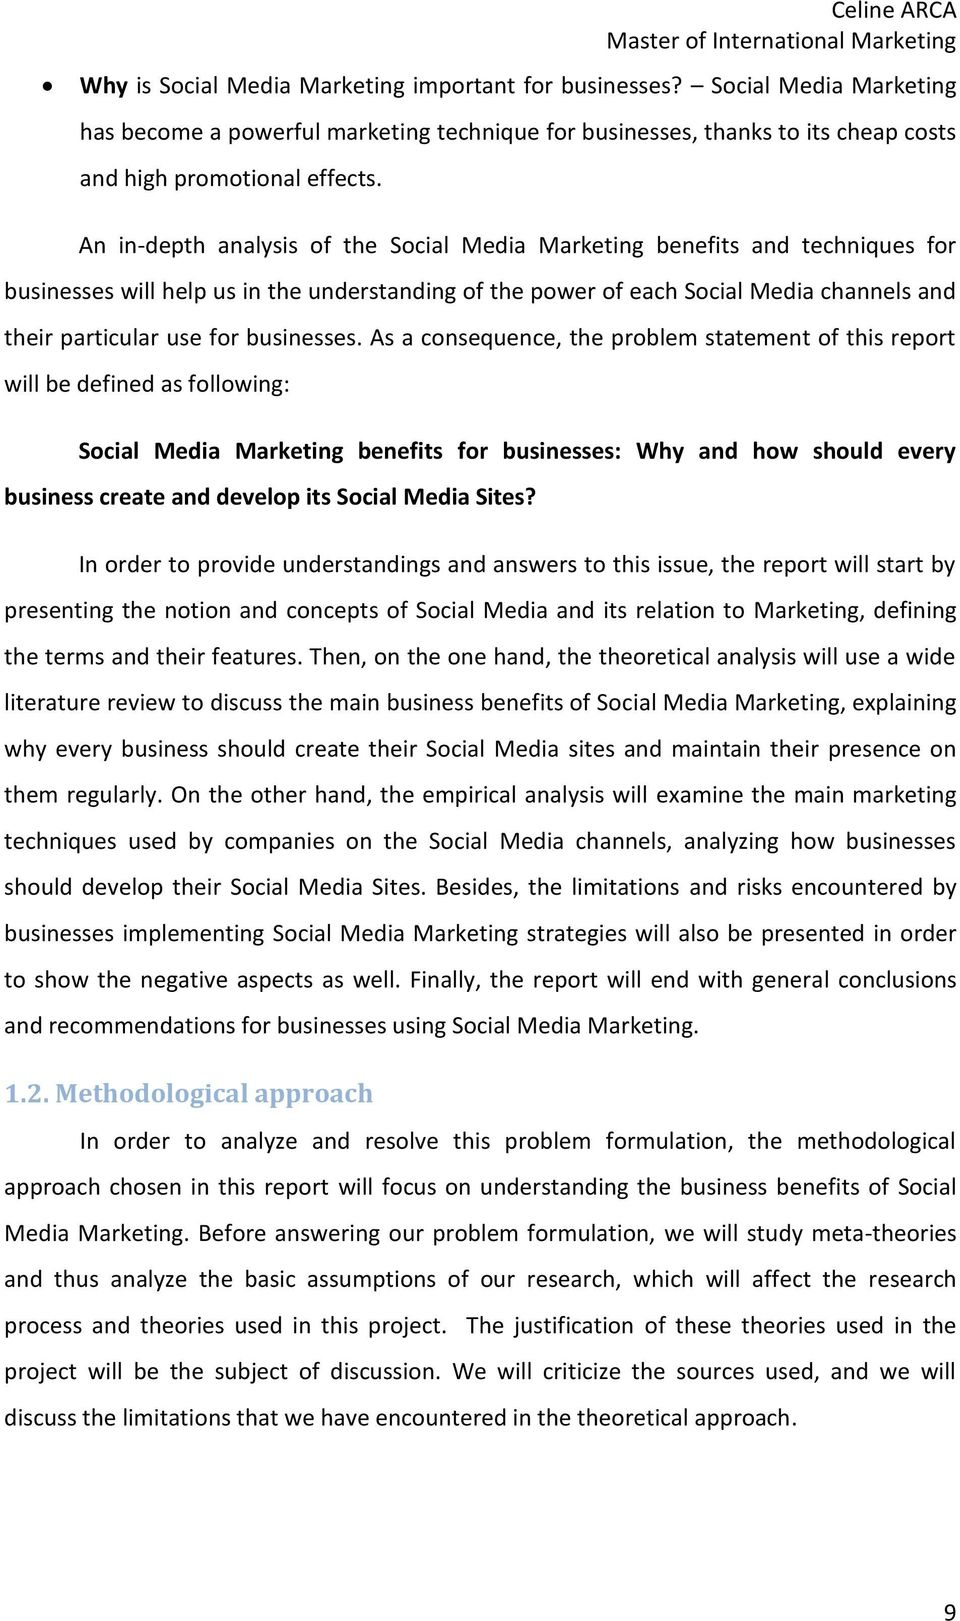 An in-depth analysis of the Social Media Marketing benefits and techniques for businesses will help us in the understanding of the power of each Social Media channels and their particular use for